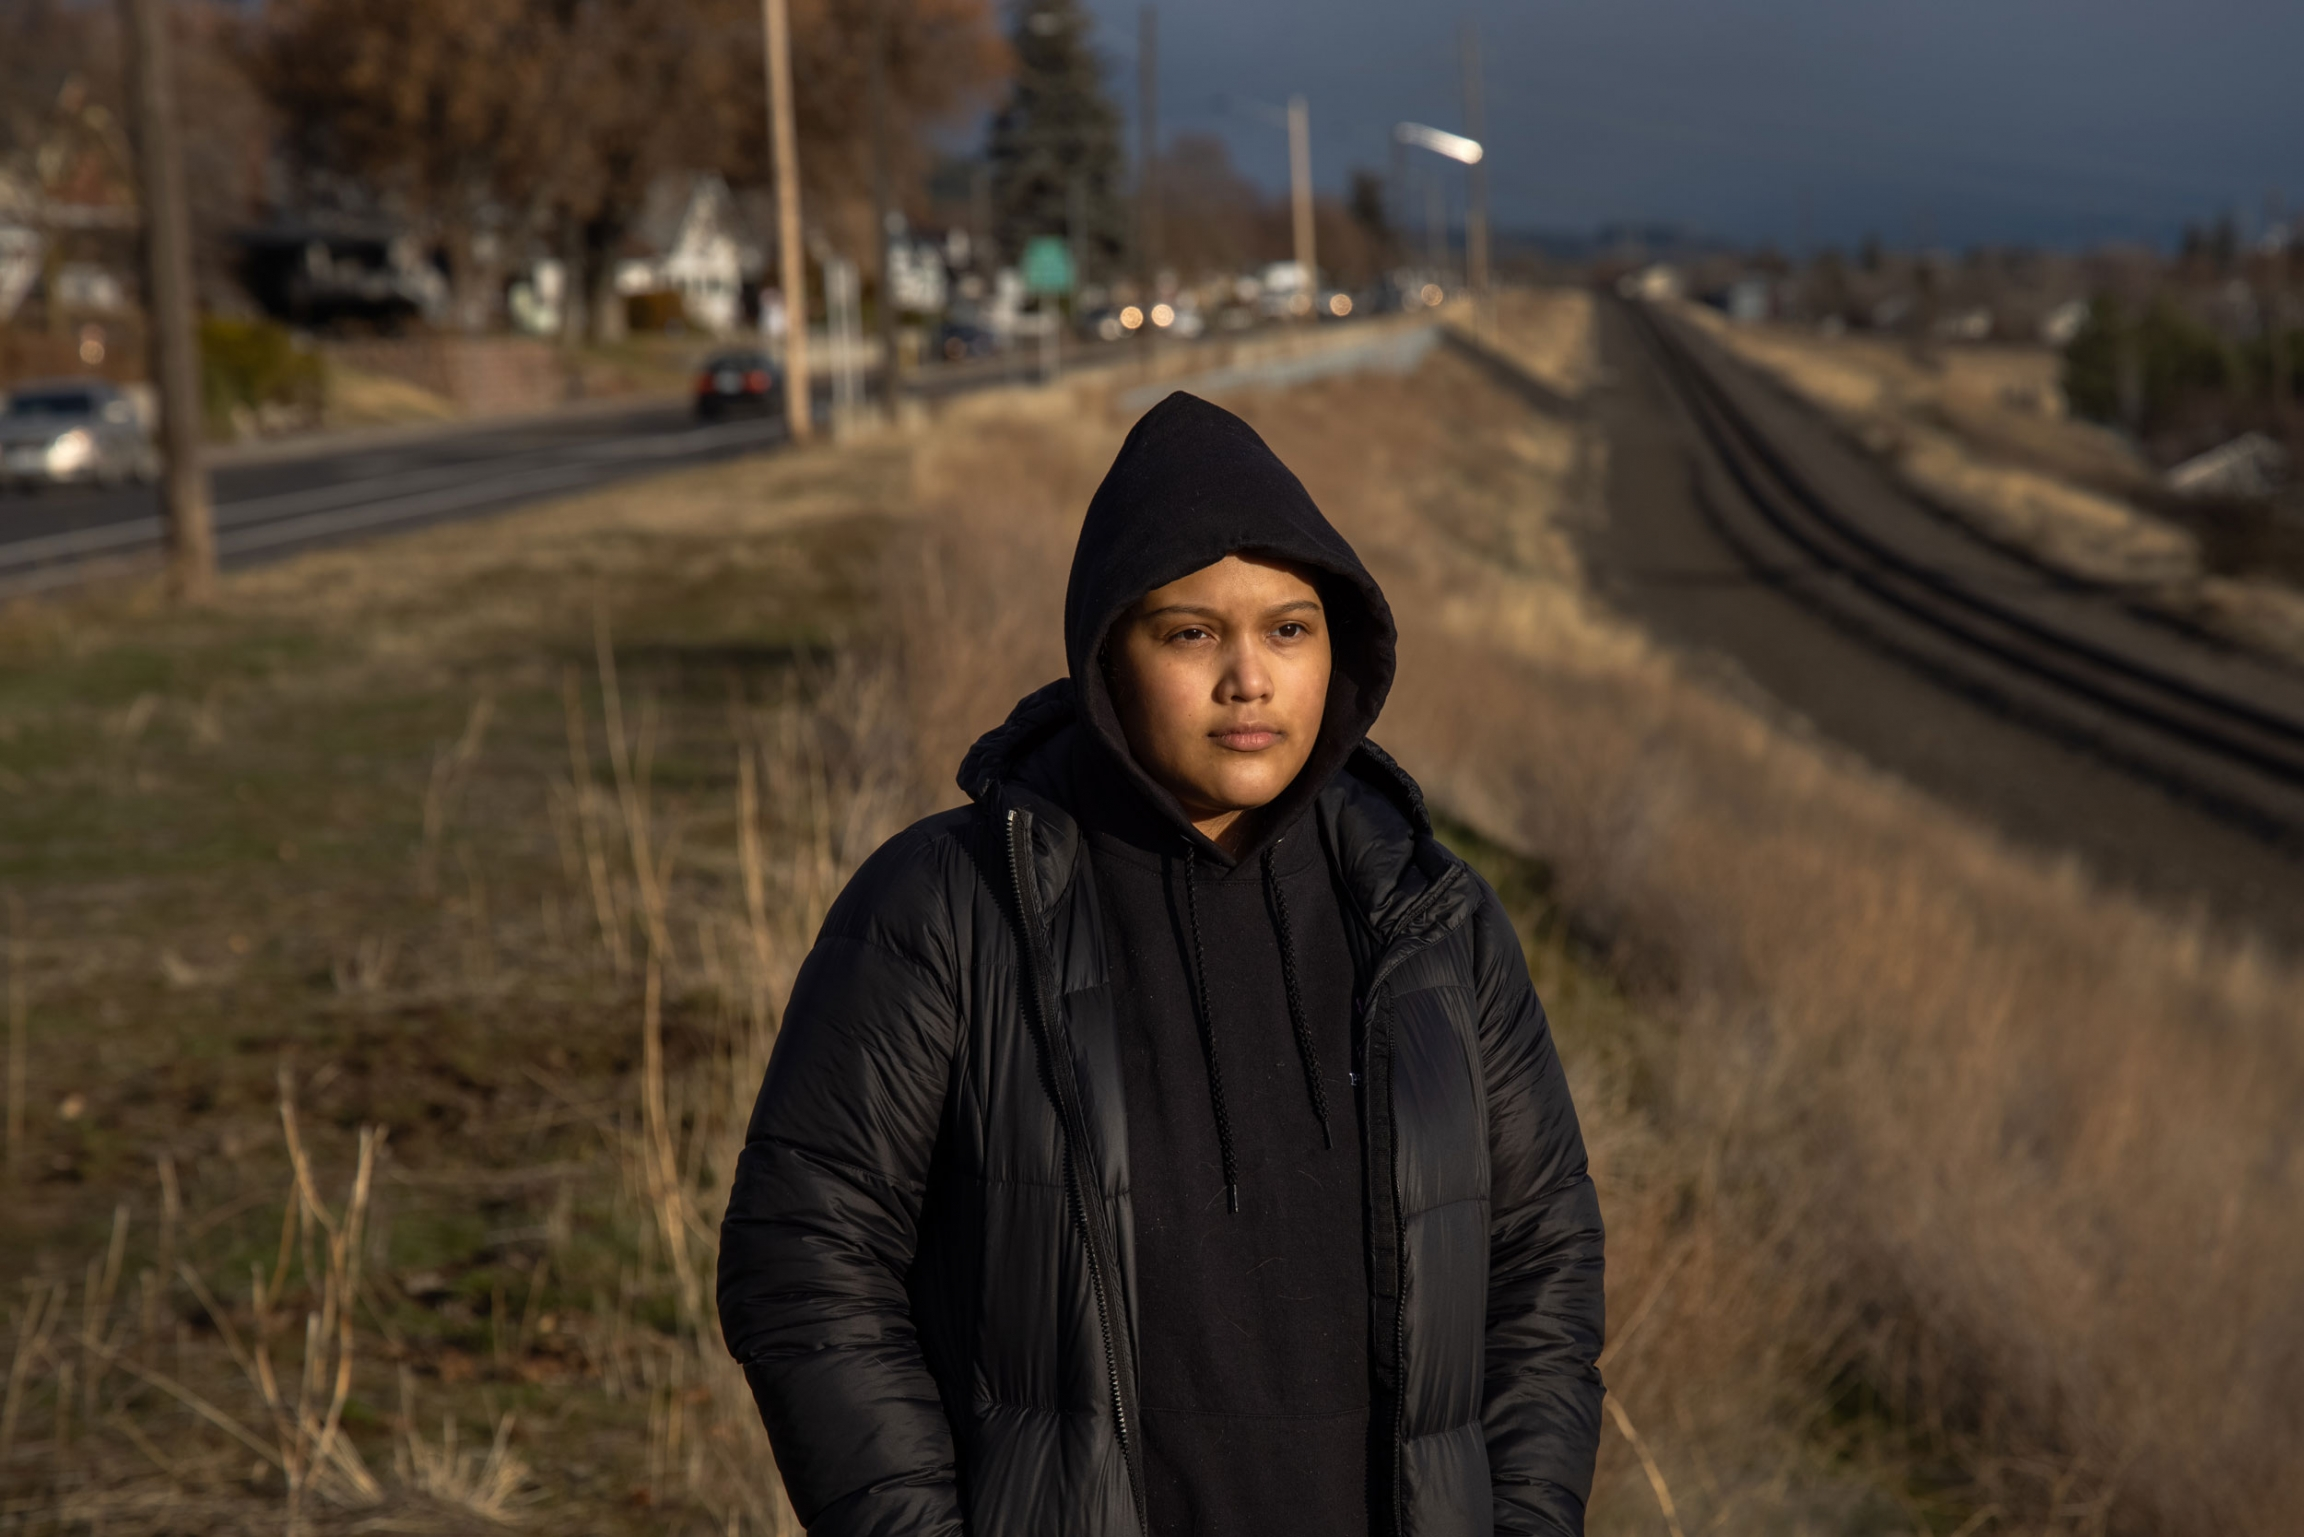 A woman is shown wearing a dark hooded sweatshirt and jacket while standing near a set of railroad tracks.